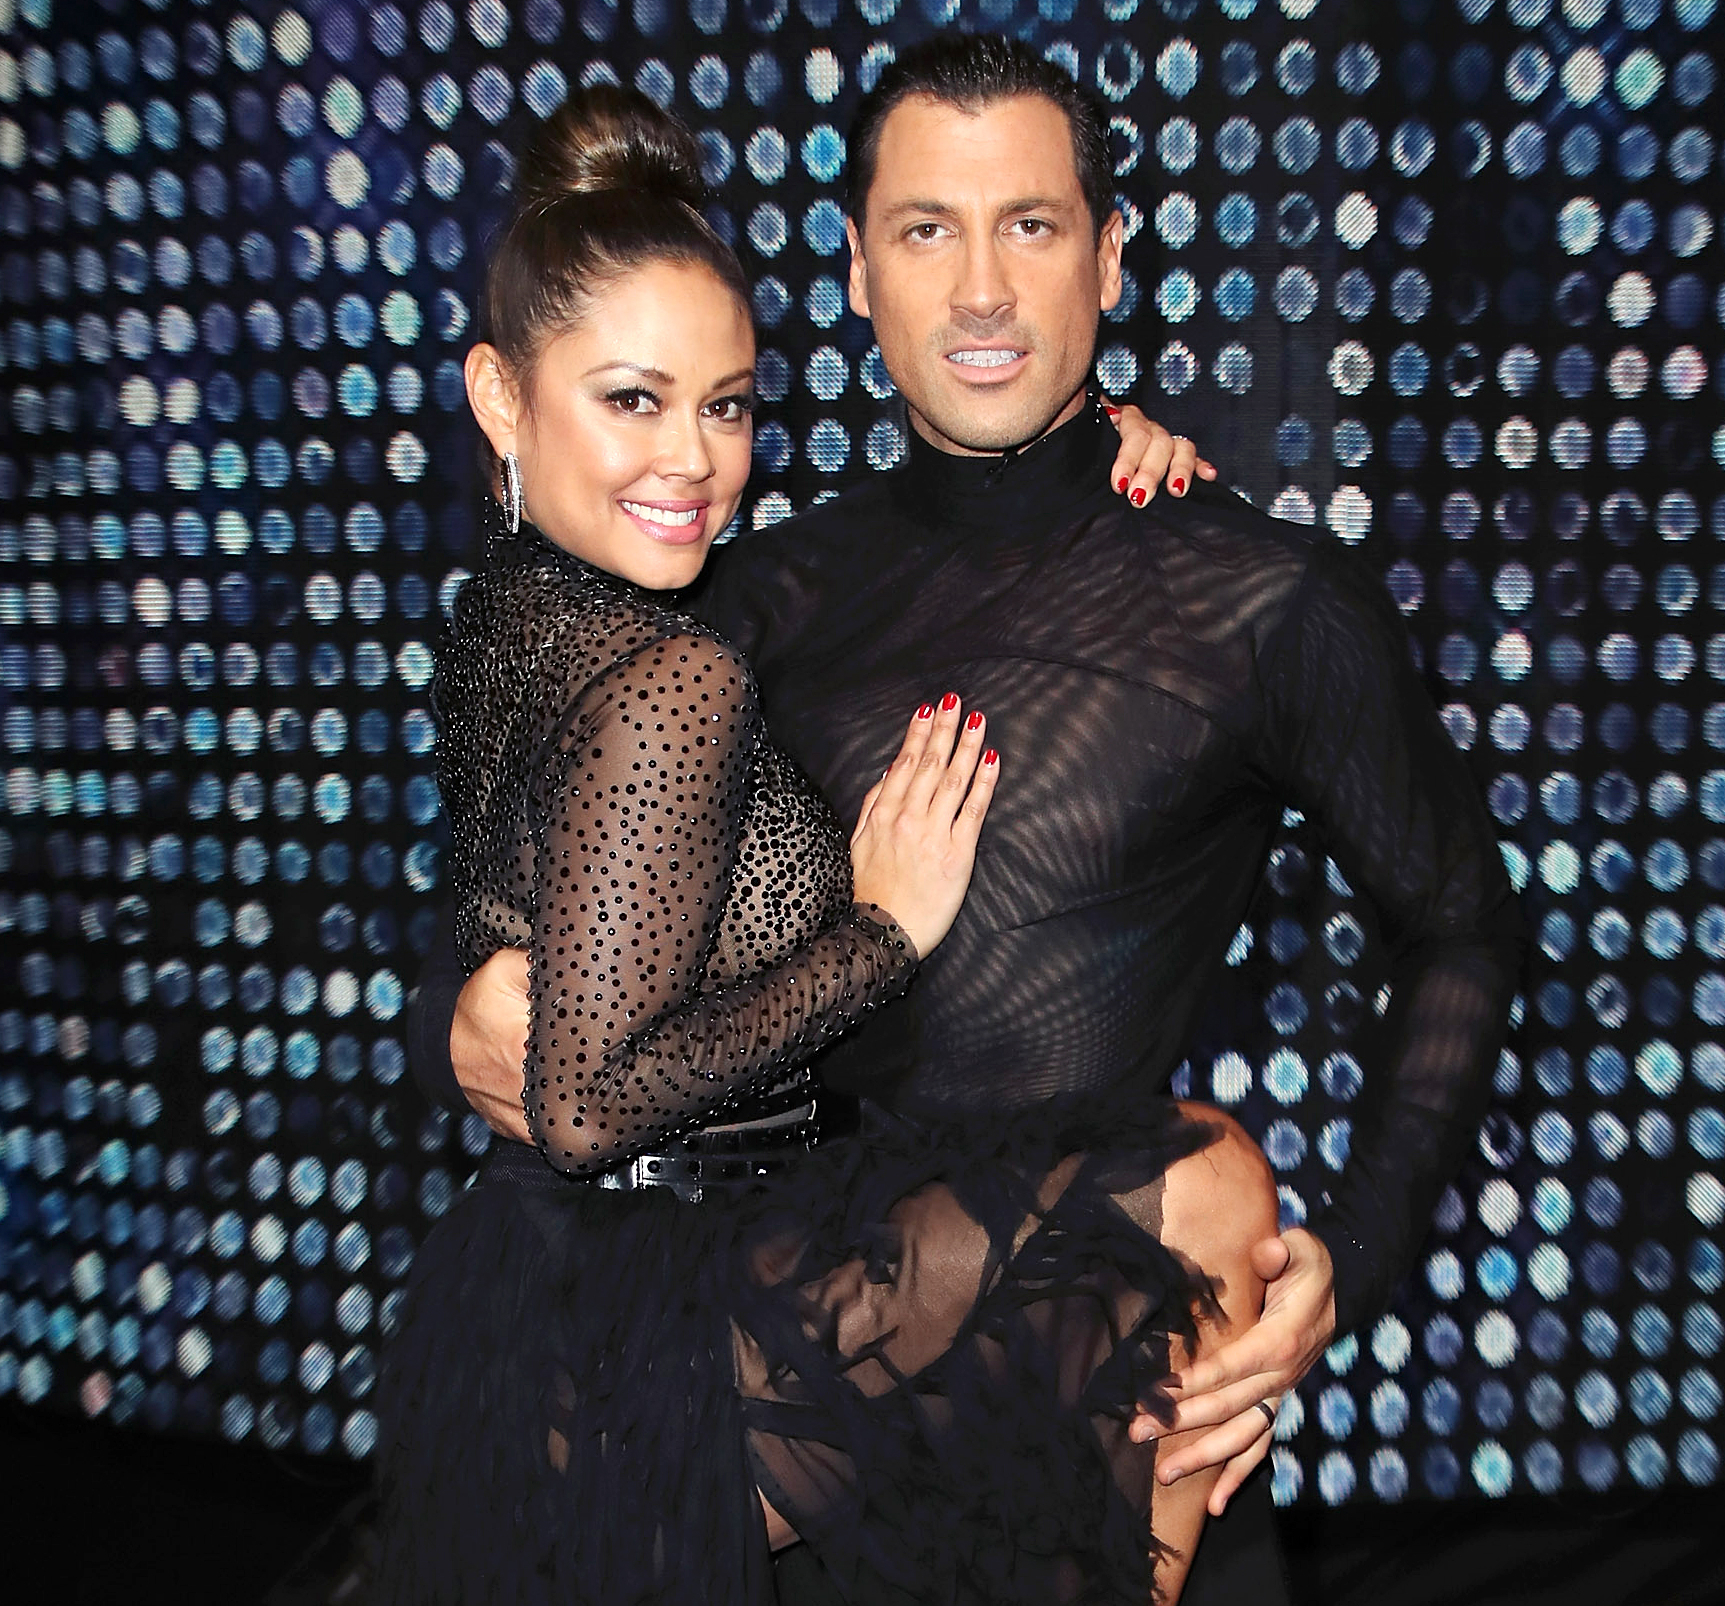 Vanessa Lachey Maksim Chmerkovskiy Dancing With The Stars